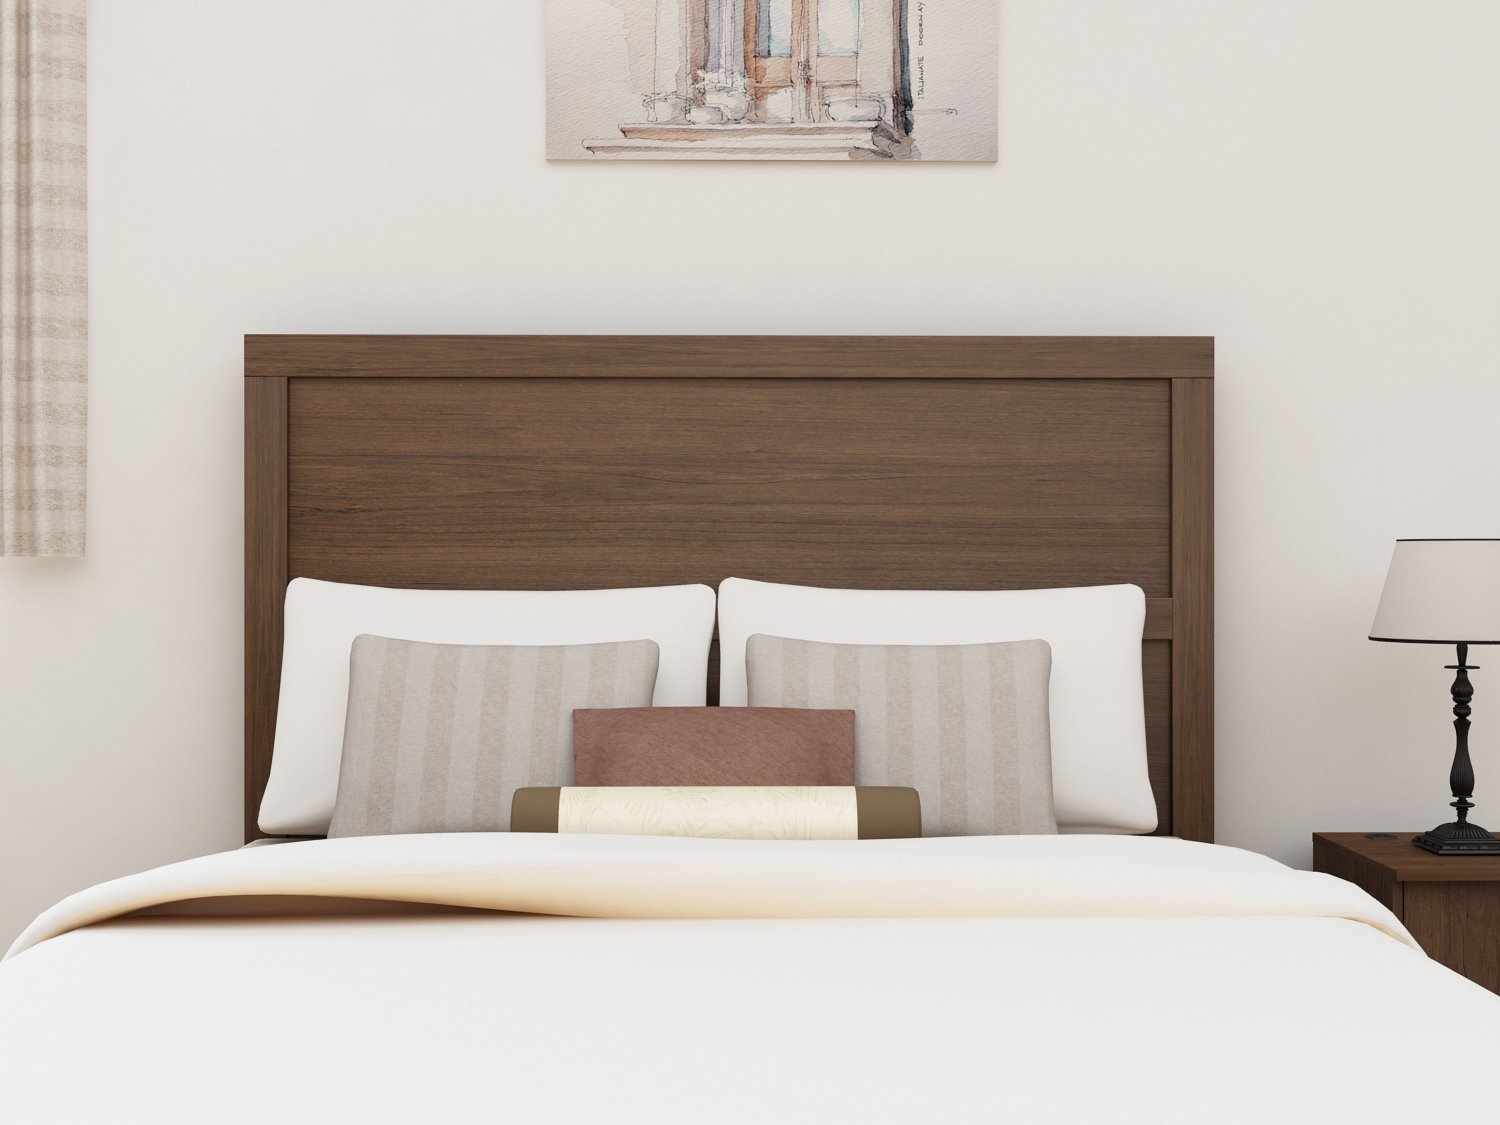 Homestar EB209134TW Finch Queen & Full Headboard, 62.99 x 51.14 x 1.85'', Torino Walnut